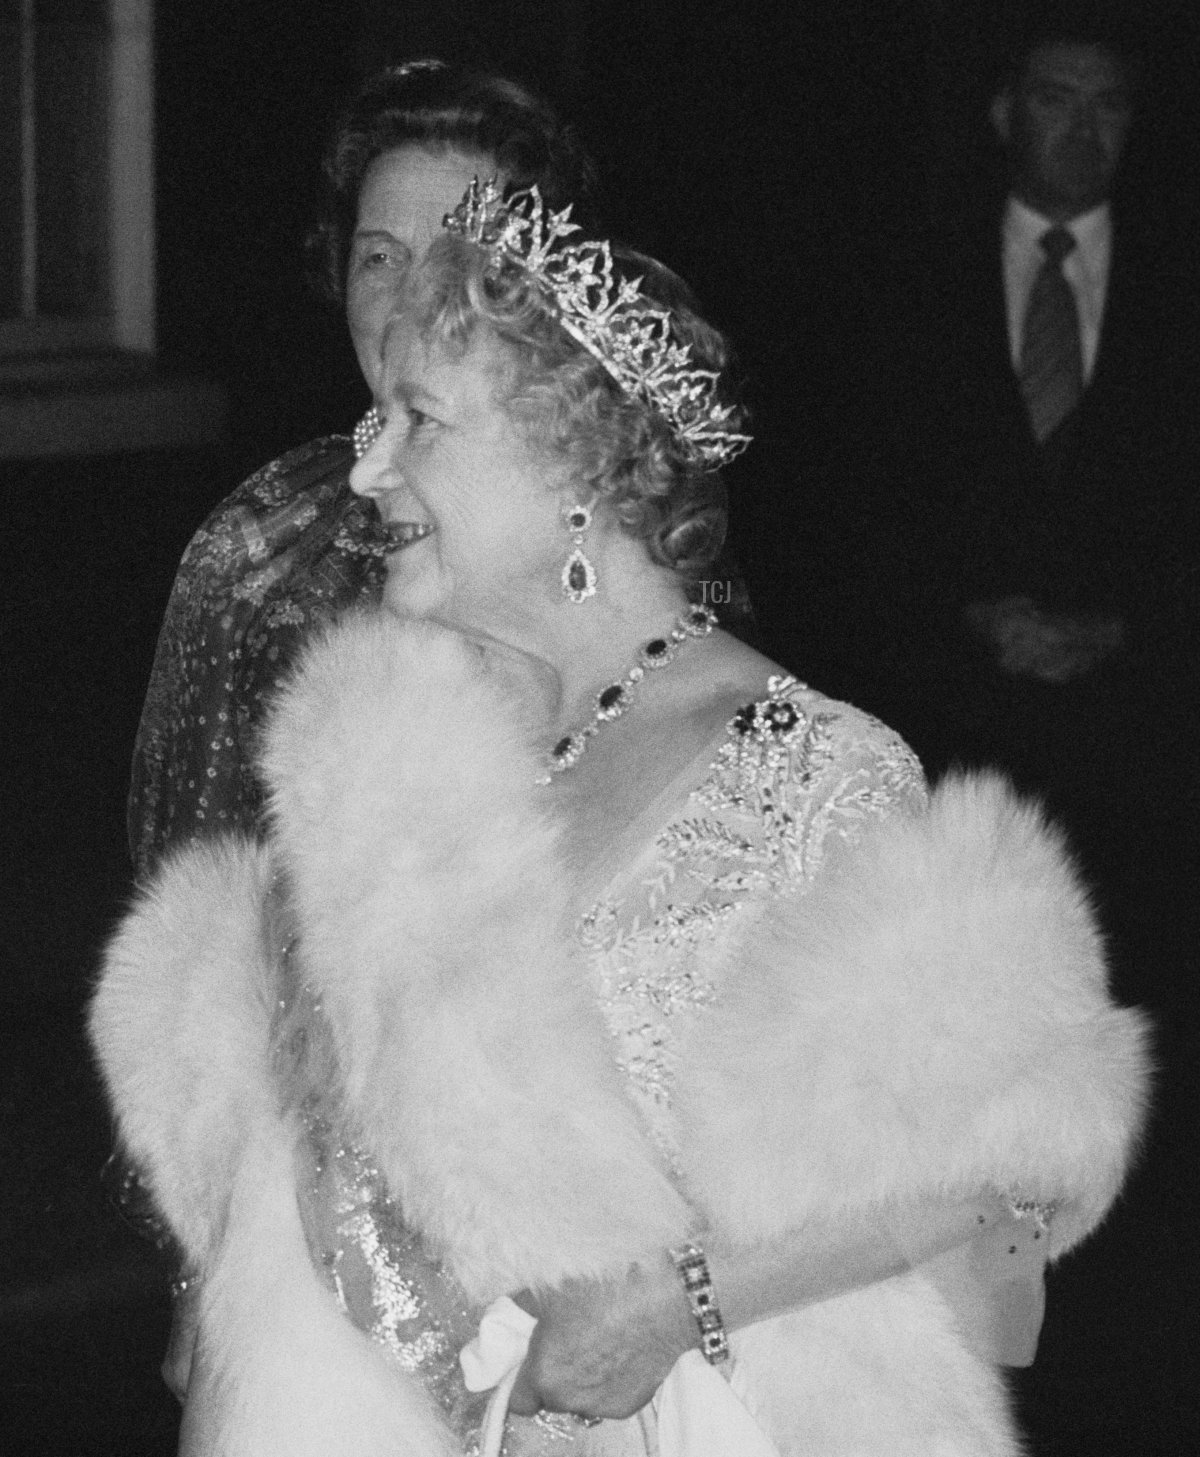 The Queen Mother (1900 - 2002) is greeted by the Prime Minister, Margaret Thatcher (1925 - 2013), upon her arrival at 10 Downing Street, where the Prime Minister hosted an 80th birthday party for the Queen Mother, London, UK, 12th November 1980